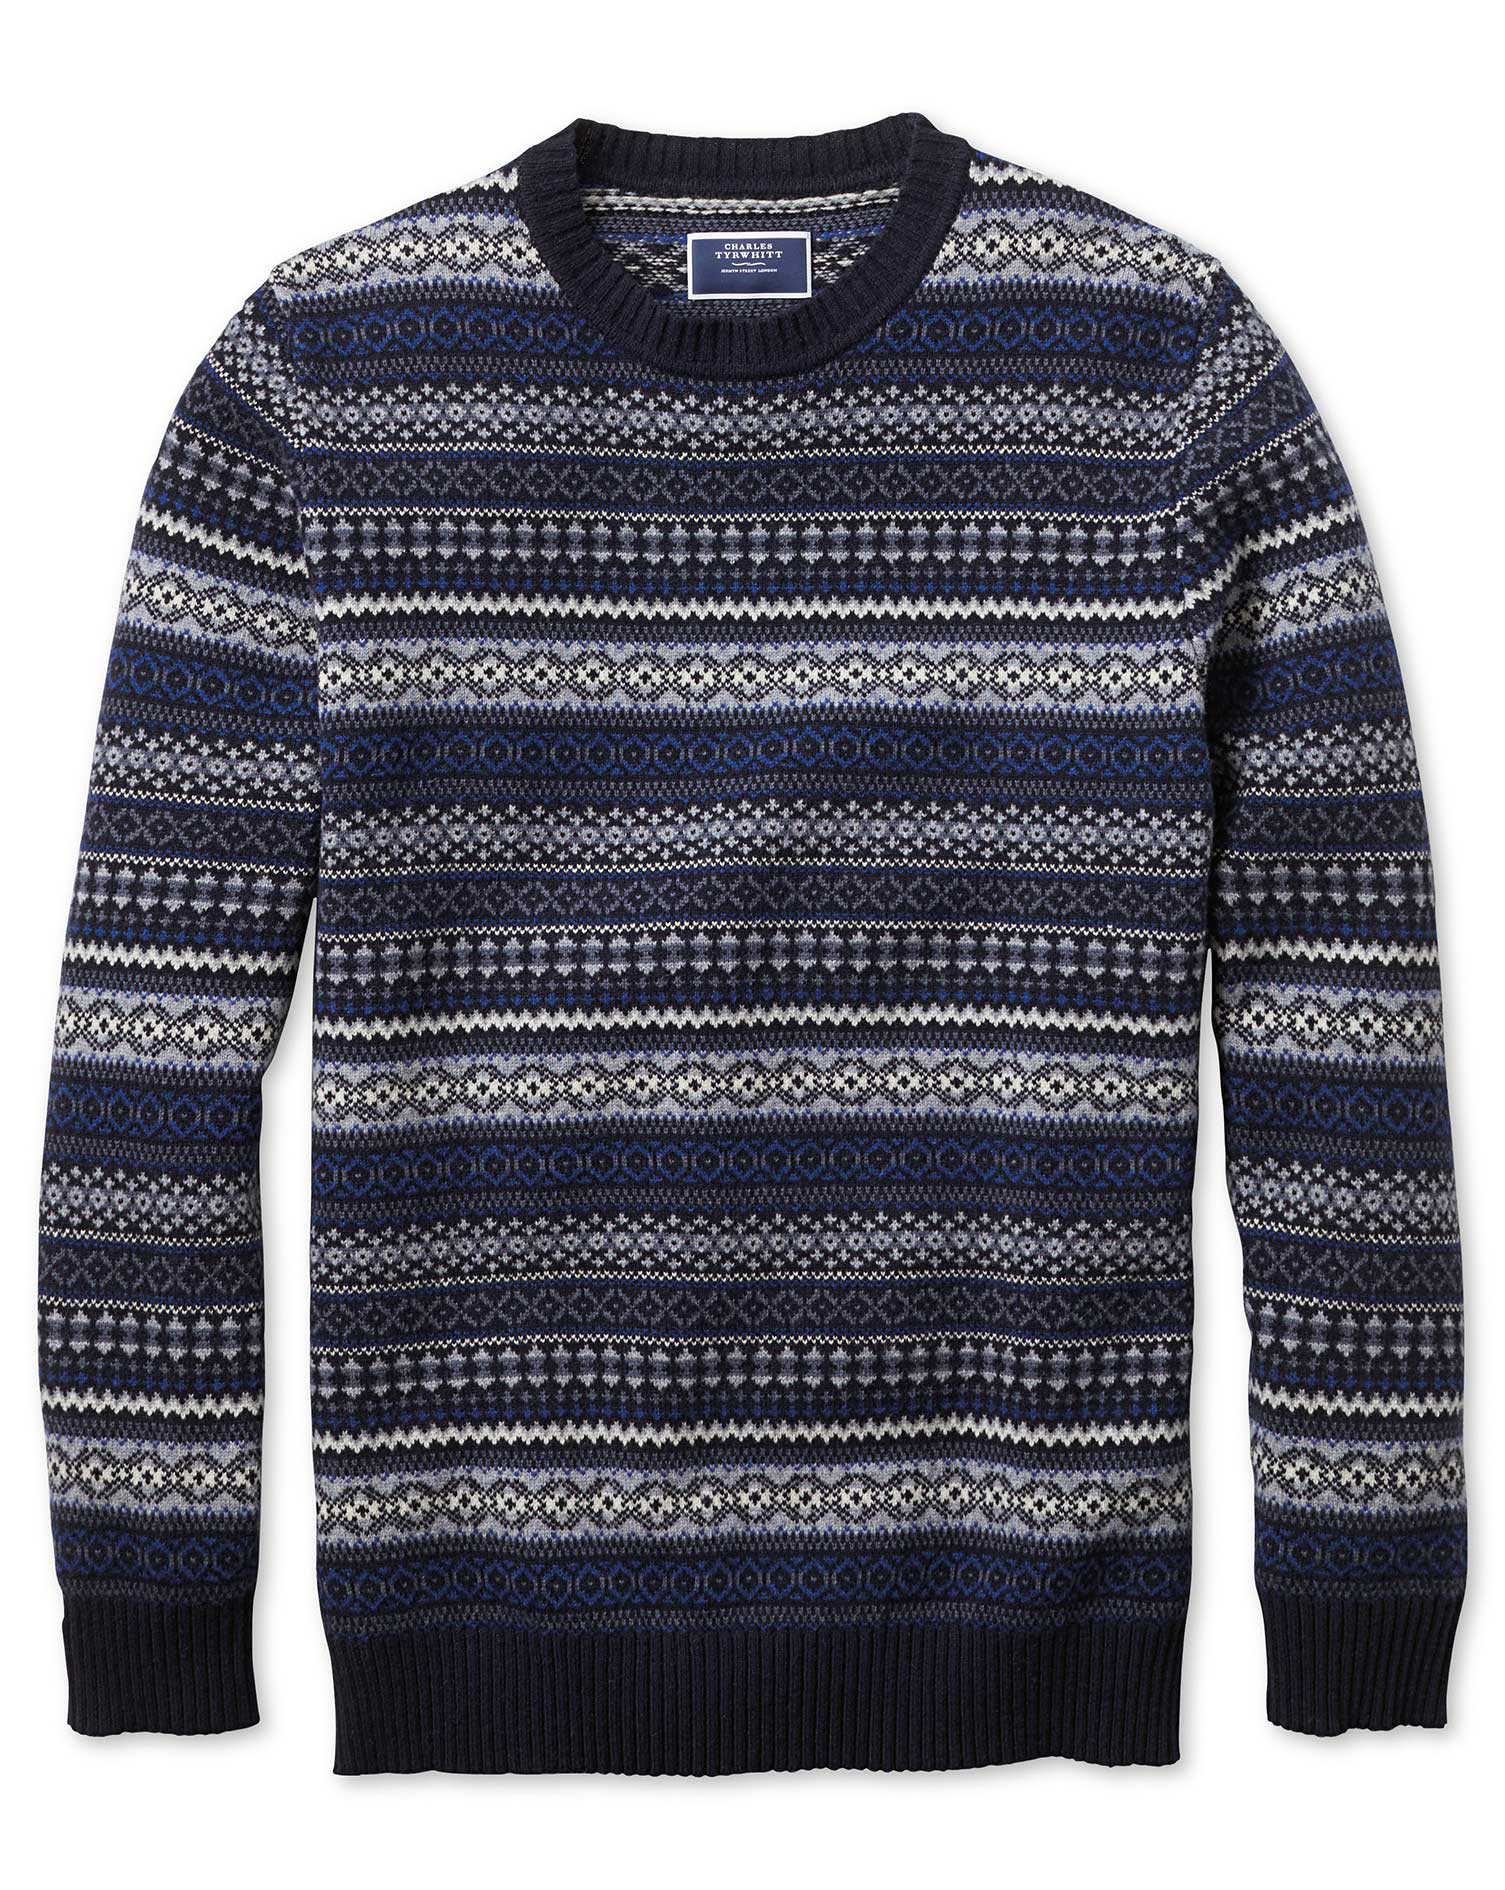 Navy and Blue Crew Neck Fair Isle Wool Jumper Size Large by Charles Tyrwhitt